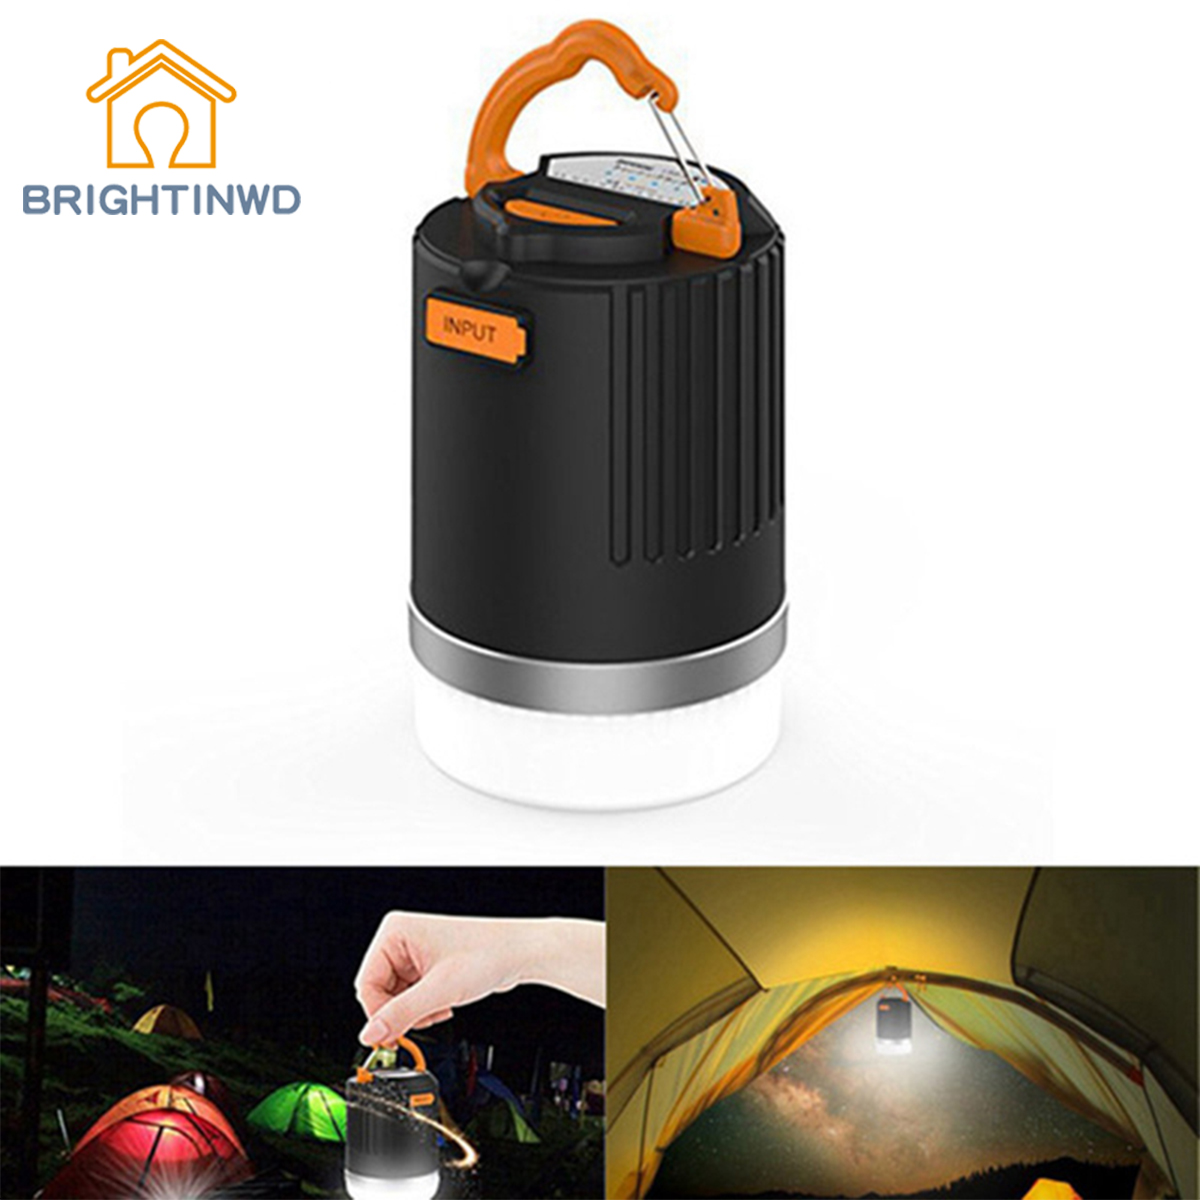 BRIGHTINWD Outdoor Camping Lantern Multifunction USB Rechargeable LED Light With 10400mAh Power Bank 440 Lumens Portable noontec giant 10400mah usb mobile power bank white